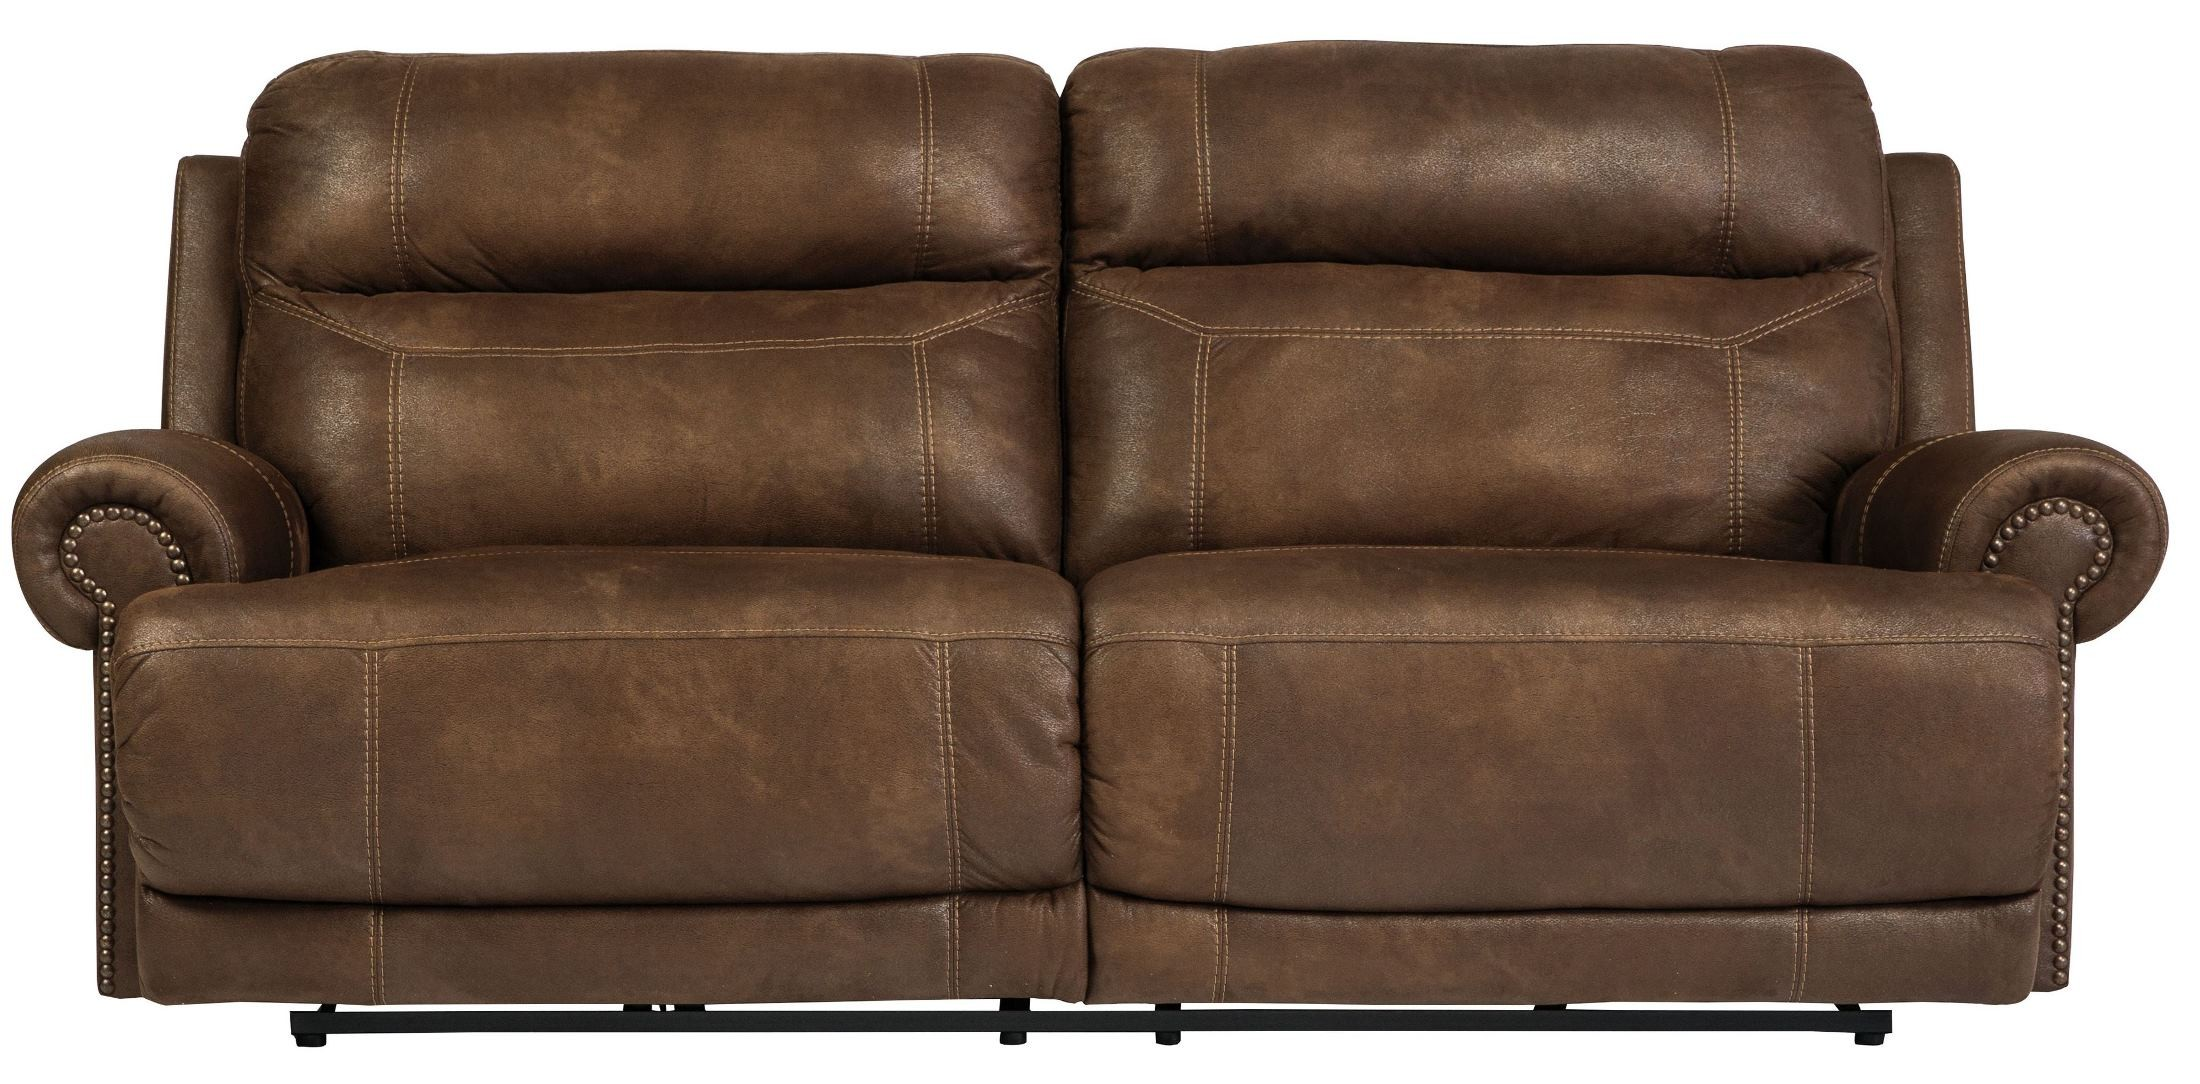 Austere brown power reclining sofa from ashley 3840047 for Affordable furniture 3 piece sectional in wyoming saddle